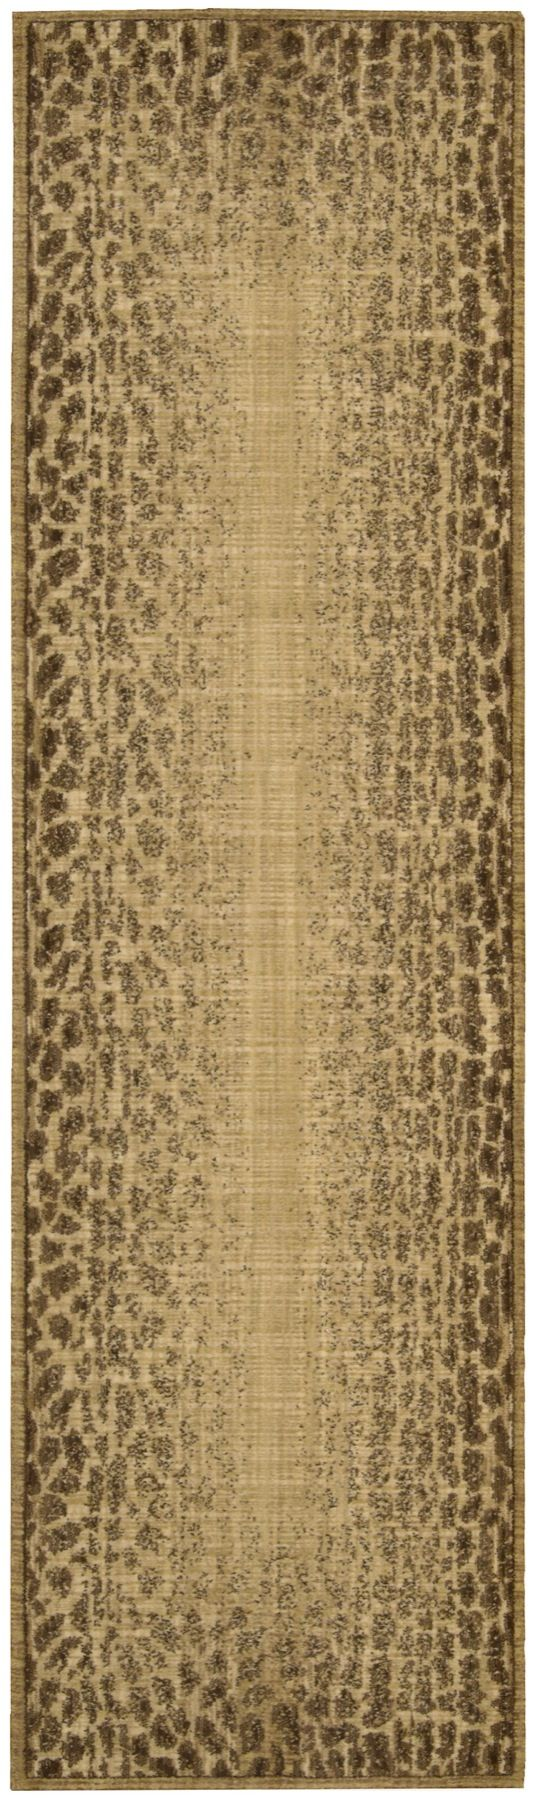 nourison radiant impression animal inspirations area rug collection